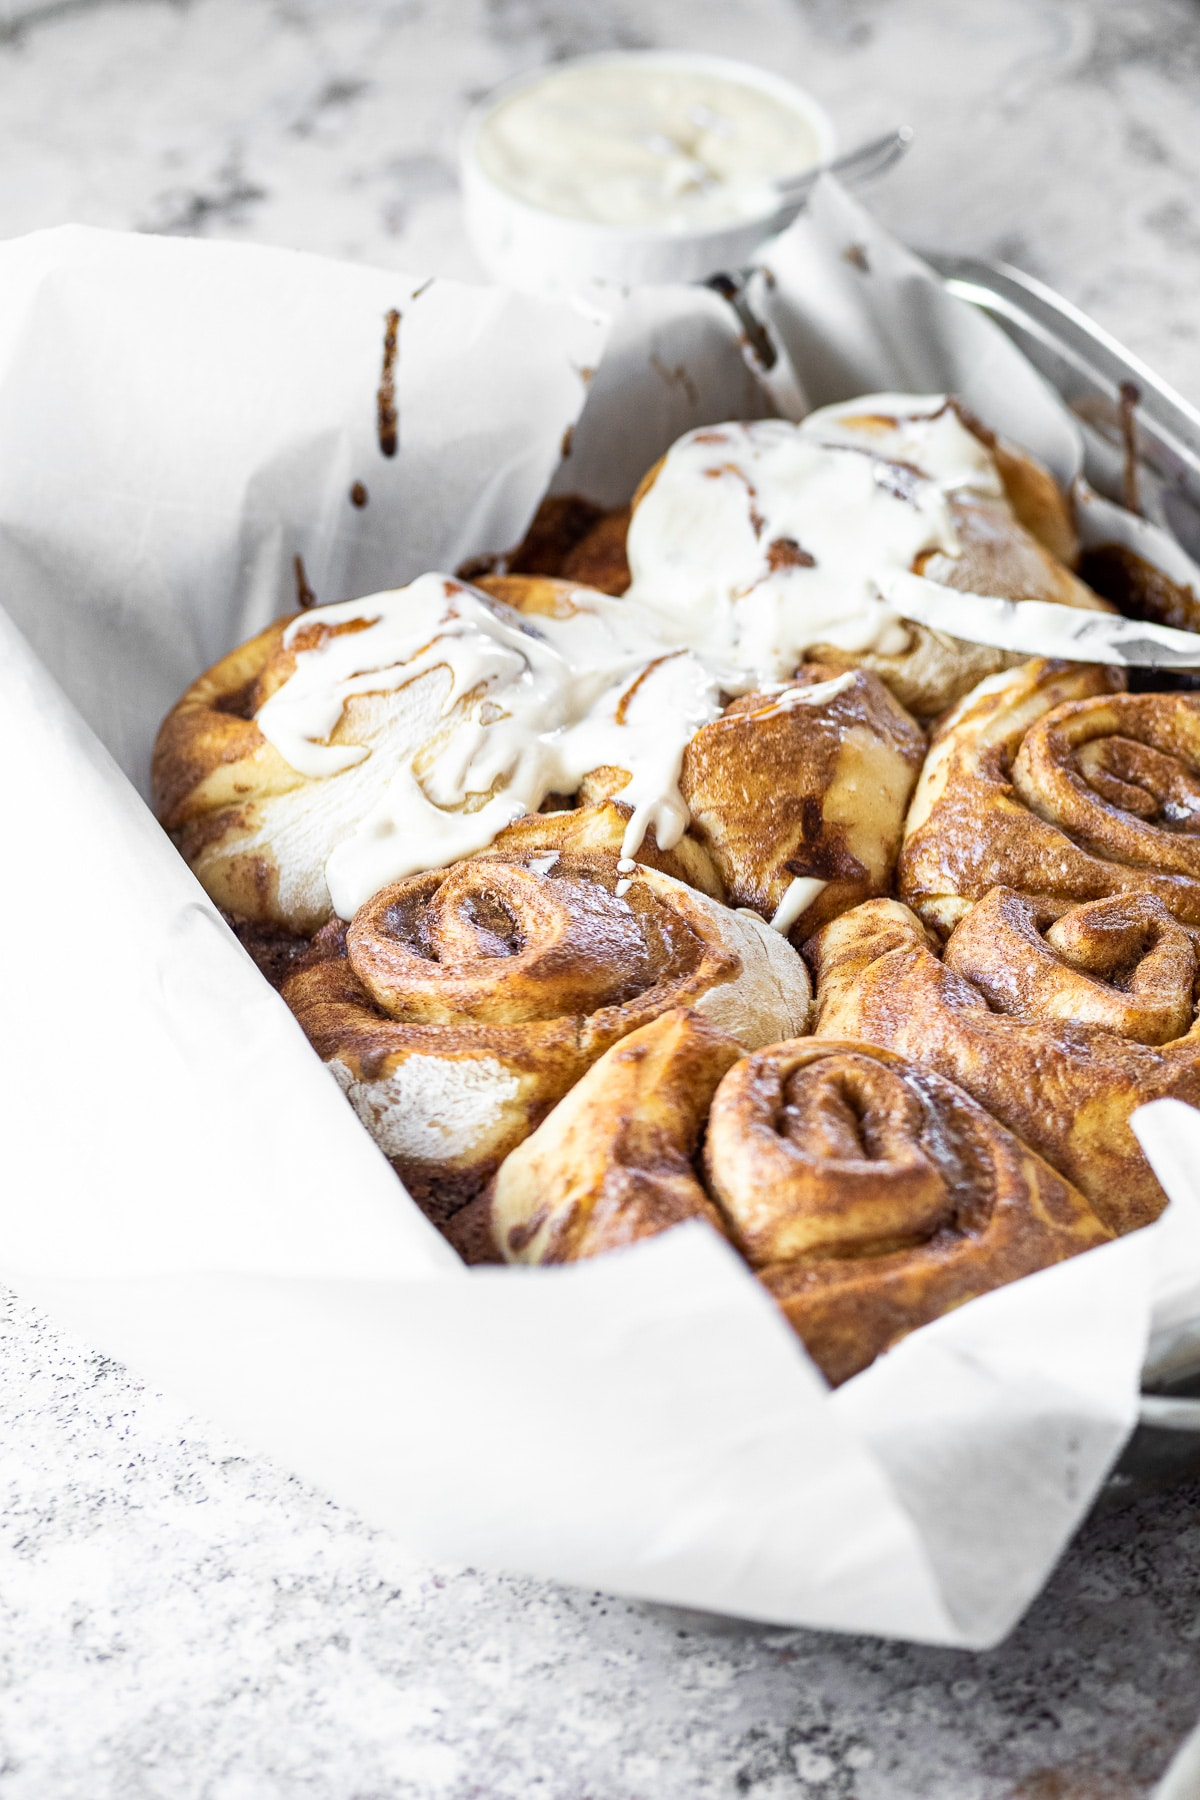 75° ankle of a pan with cinnamon buns and some are topped with icing